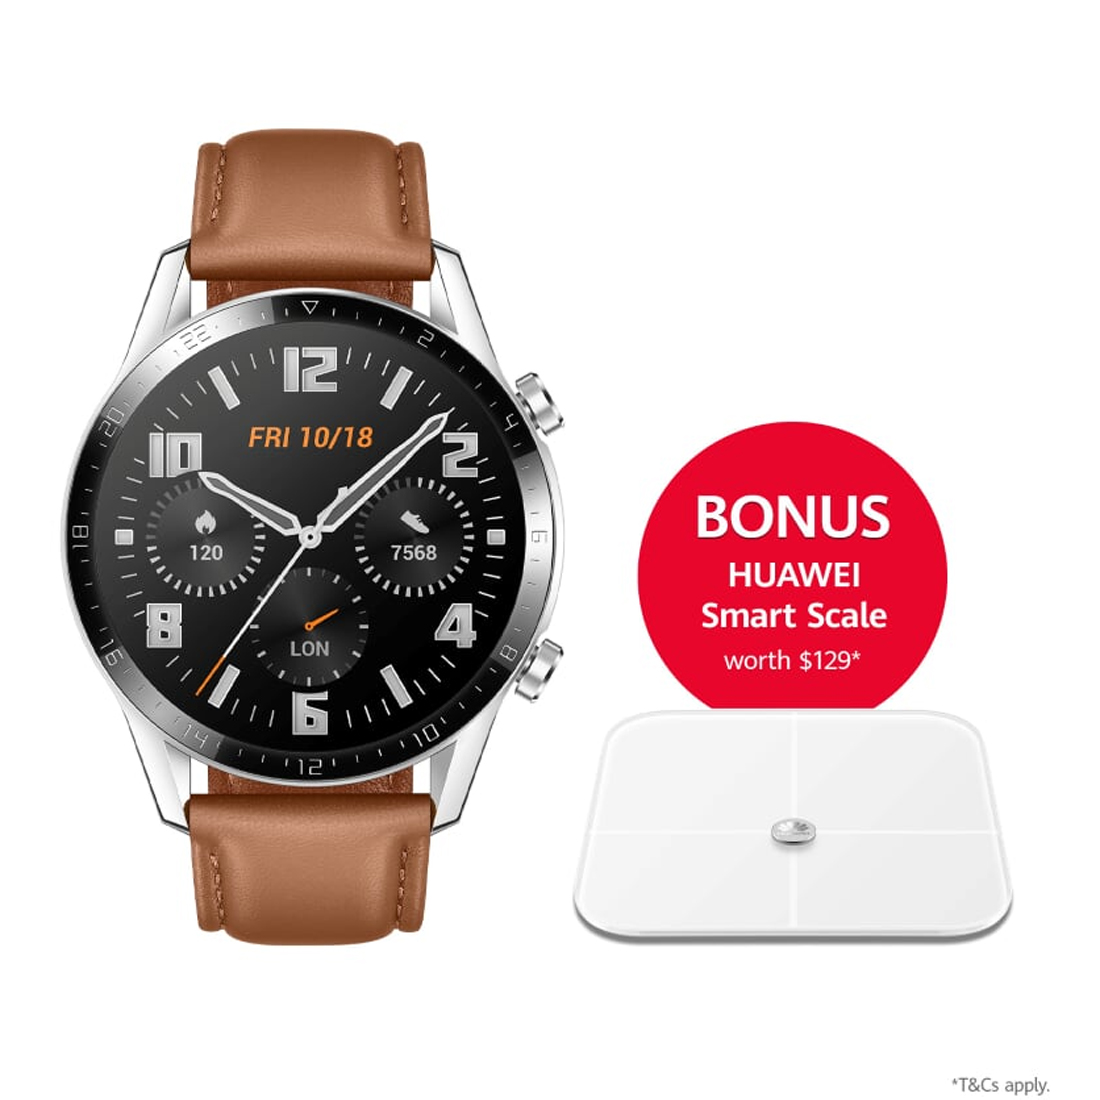 Huawei Watch GT 2 Classic 46mm Smartwatch (Bonus Smart Scale w/ Redemption) - Pebble Brown